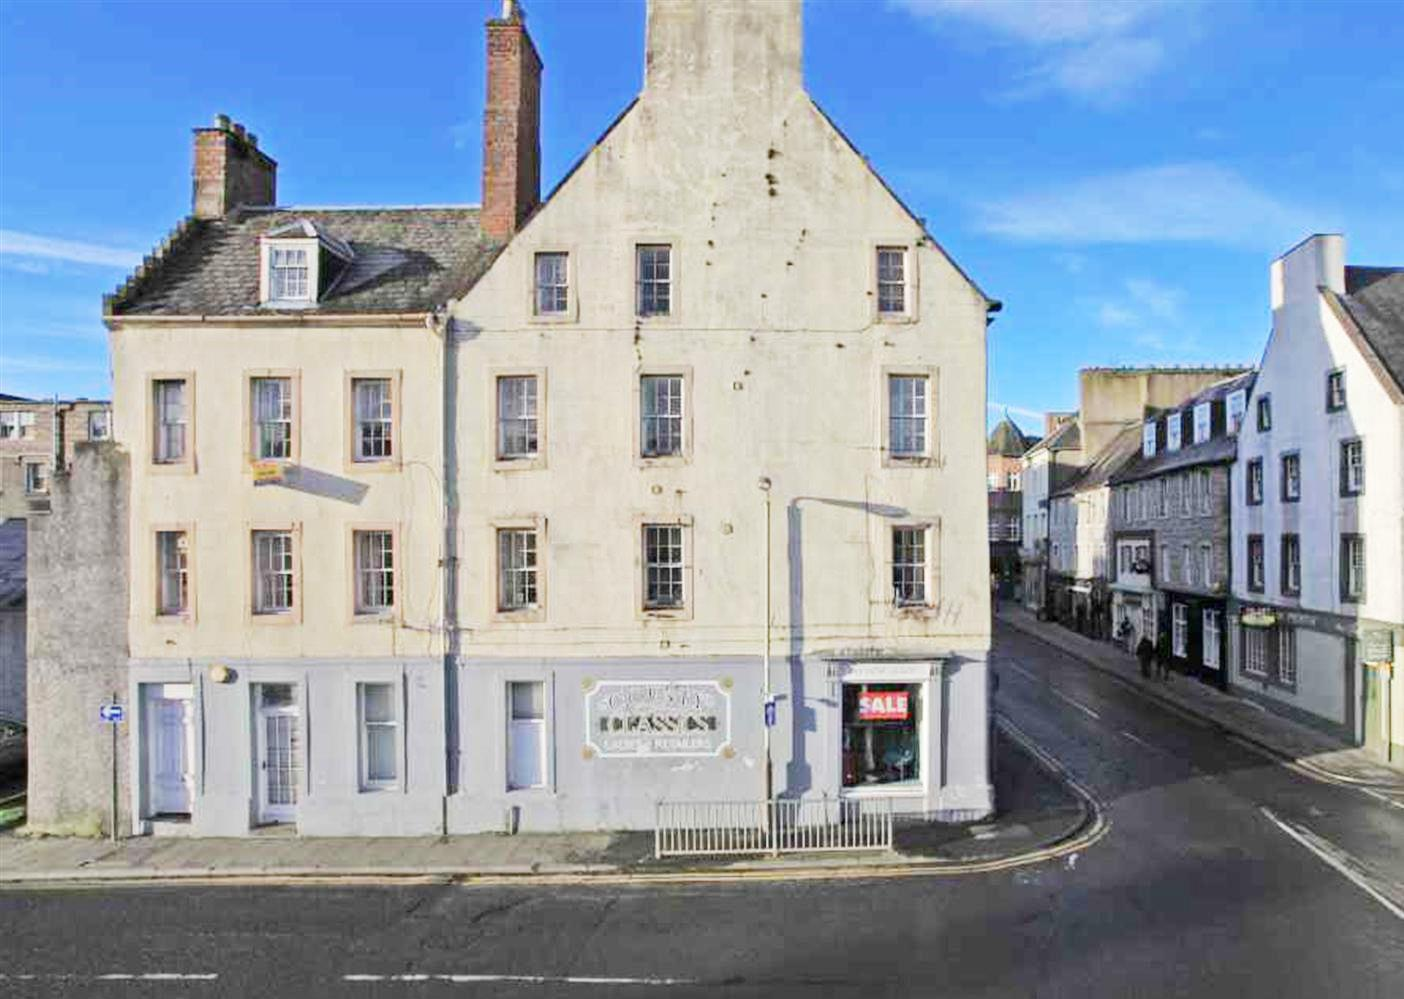 Flat 4, 10, South Street, PERTH, Perthshire, PH2 8PG, UK